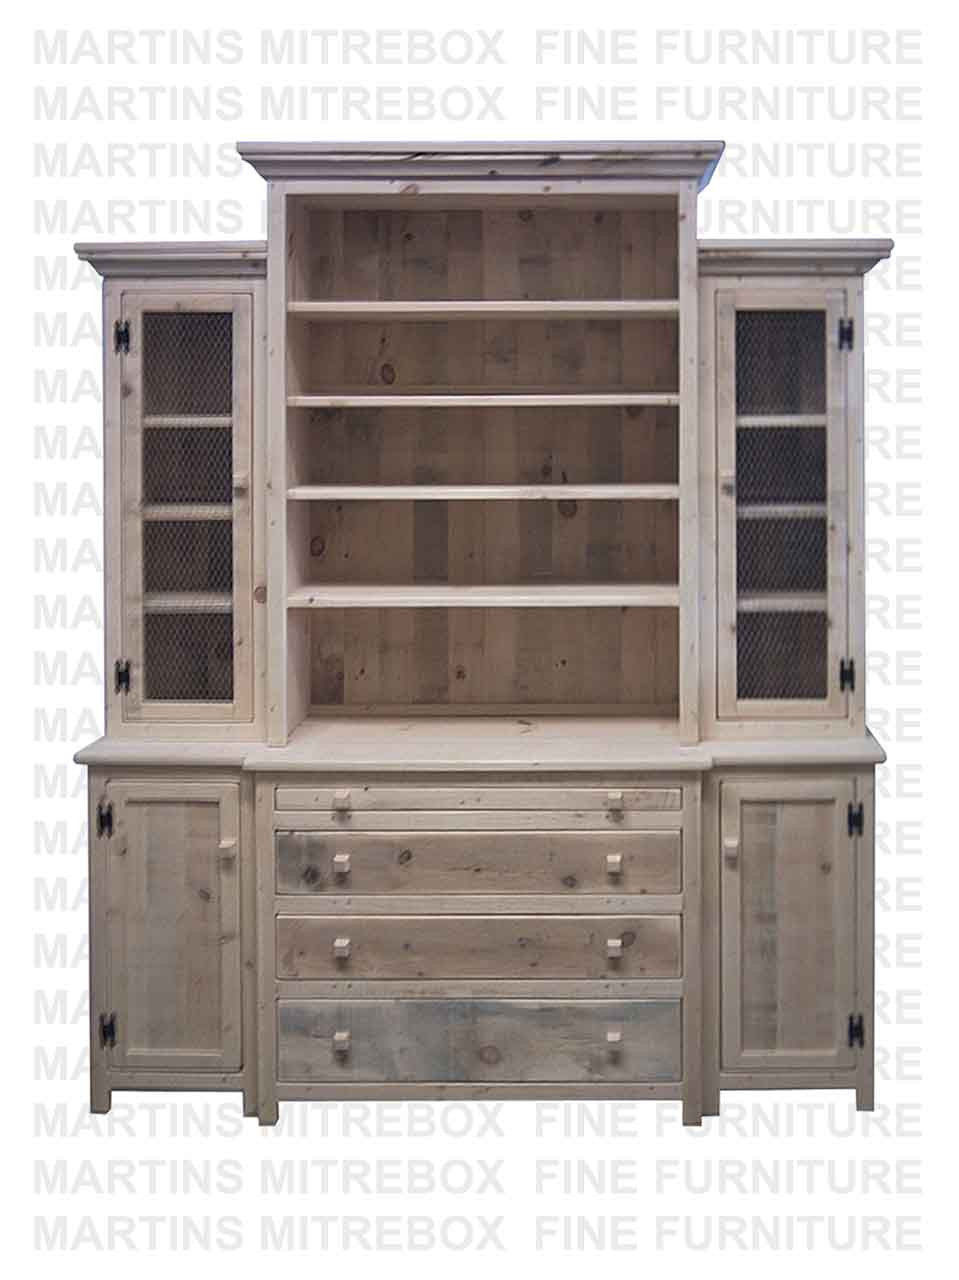 Incredible Pine Rustic Break Front Hutch And Buffet 20D X 76W X 91H With 4 Doors 3 Drawers And Open Hutch Pull Out Server Home Interior And Landscaping Ologienasavecom